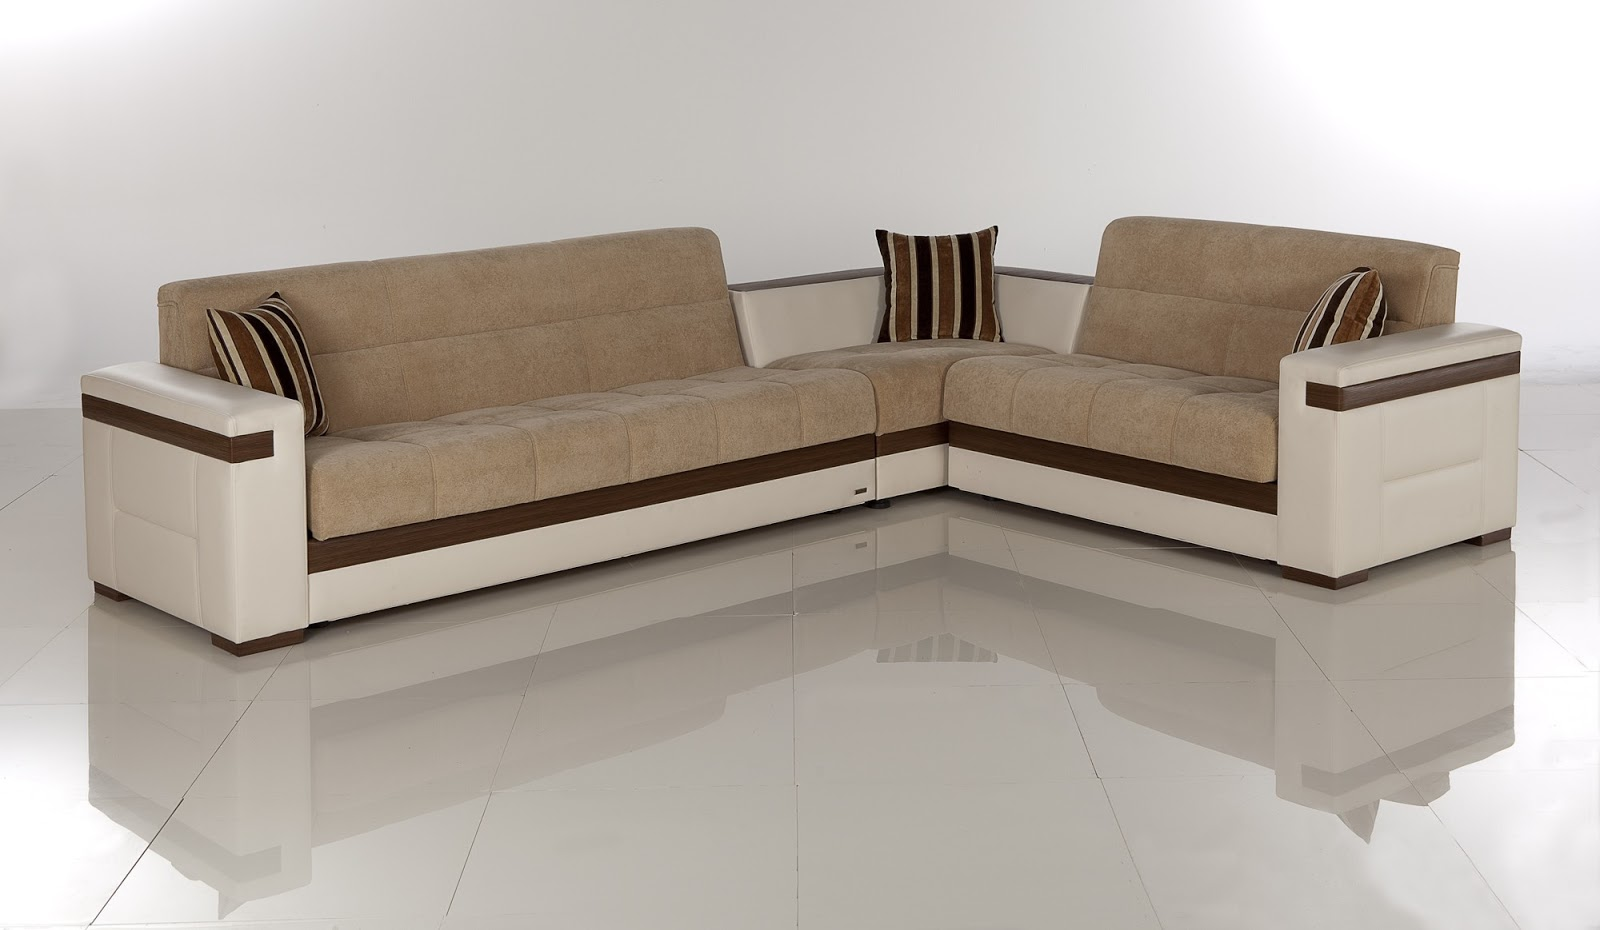 Sofa Designs Ideas Home And Design: sofa design ideas photos